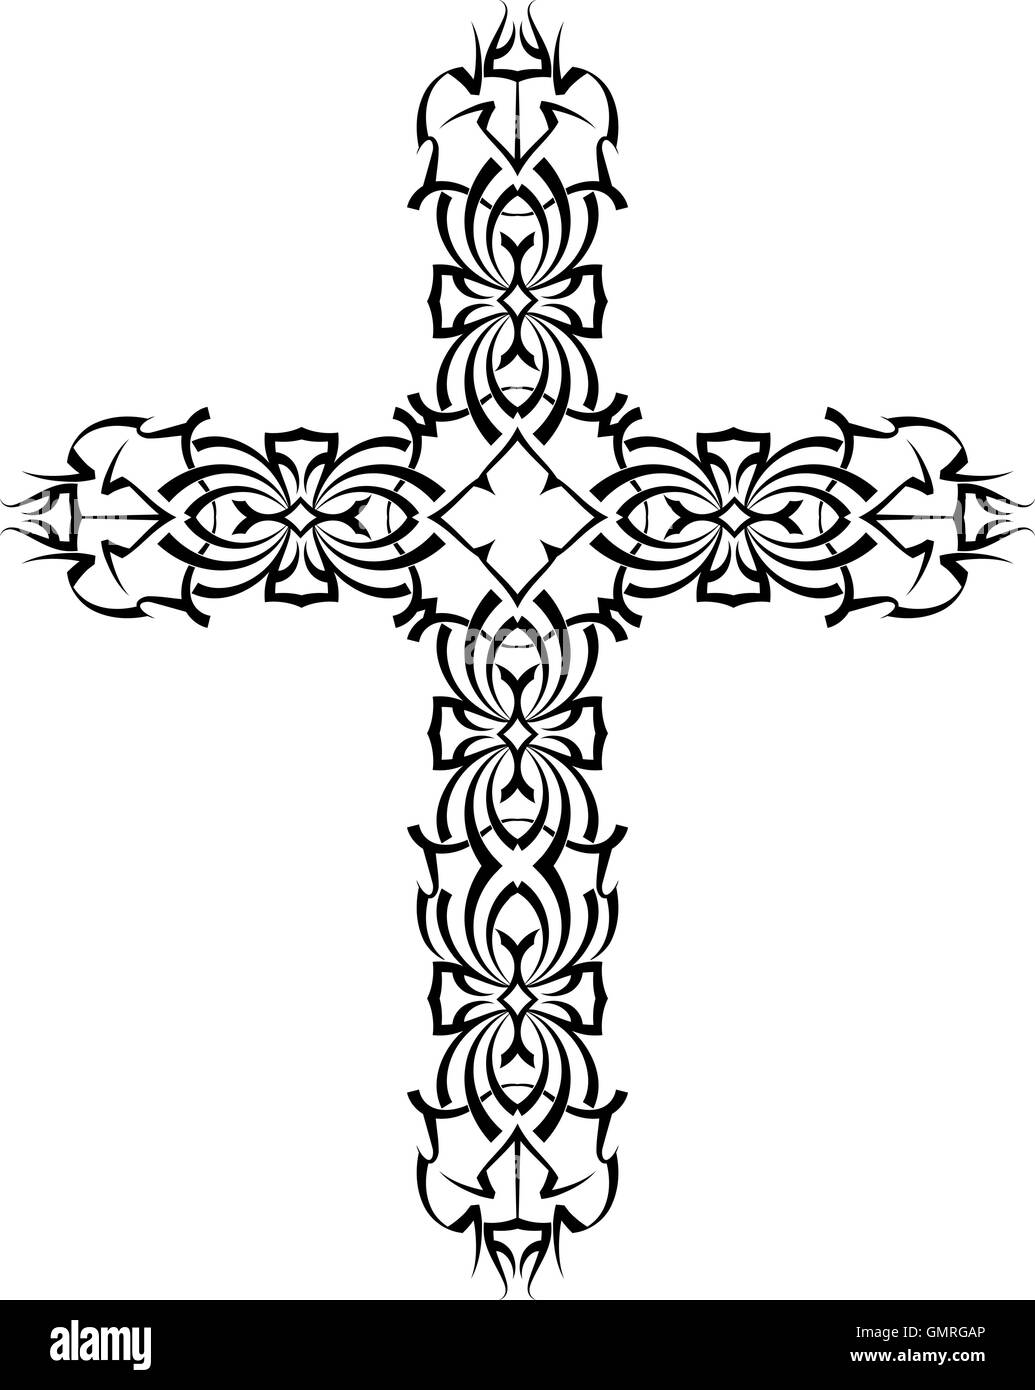 Tattoo Of Christ Stock Photos & Tattoo Of Christ Stock Images - Alamy